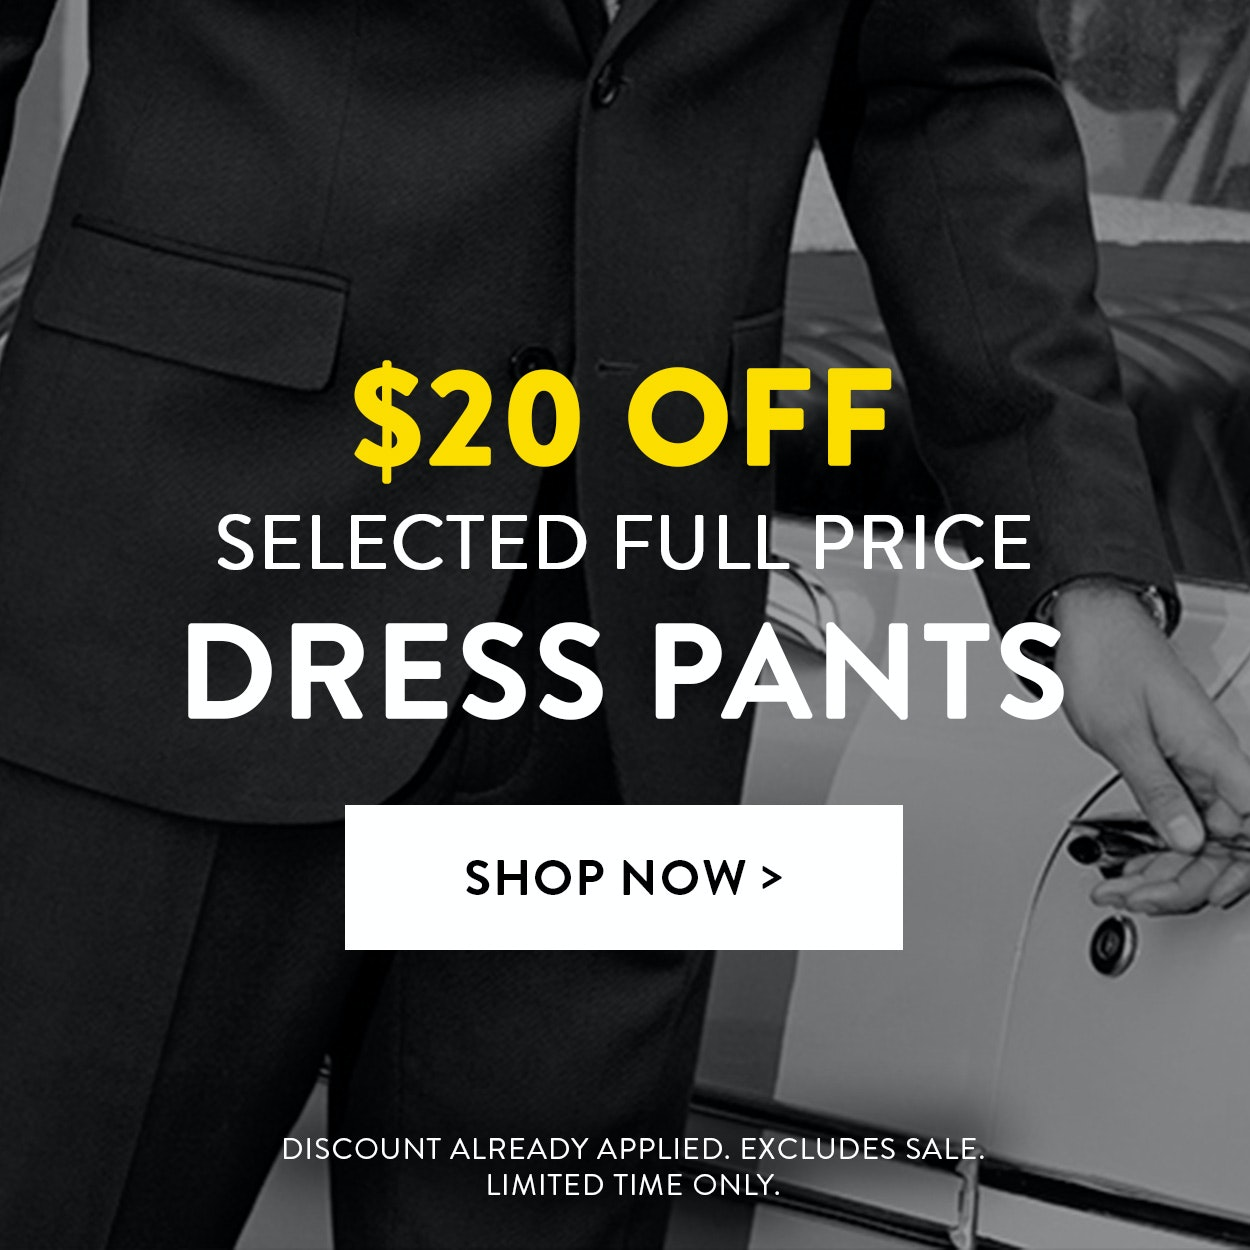 $20 off select full price dress pants